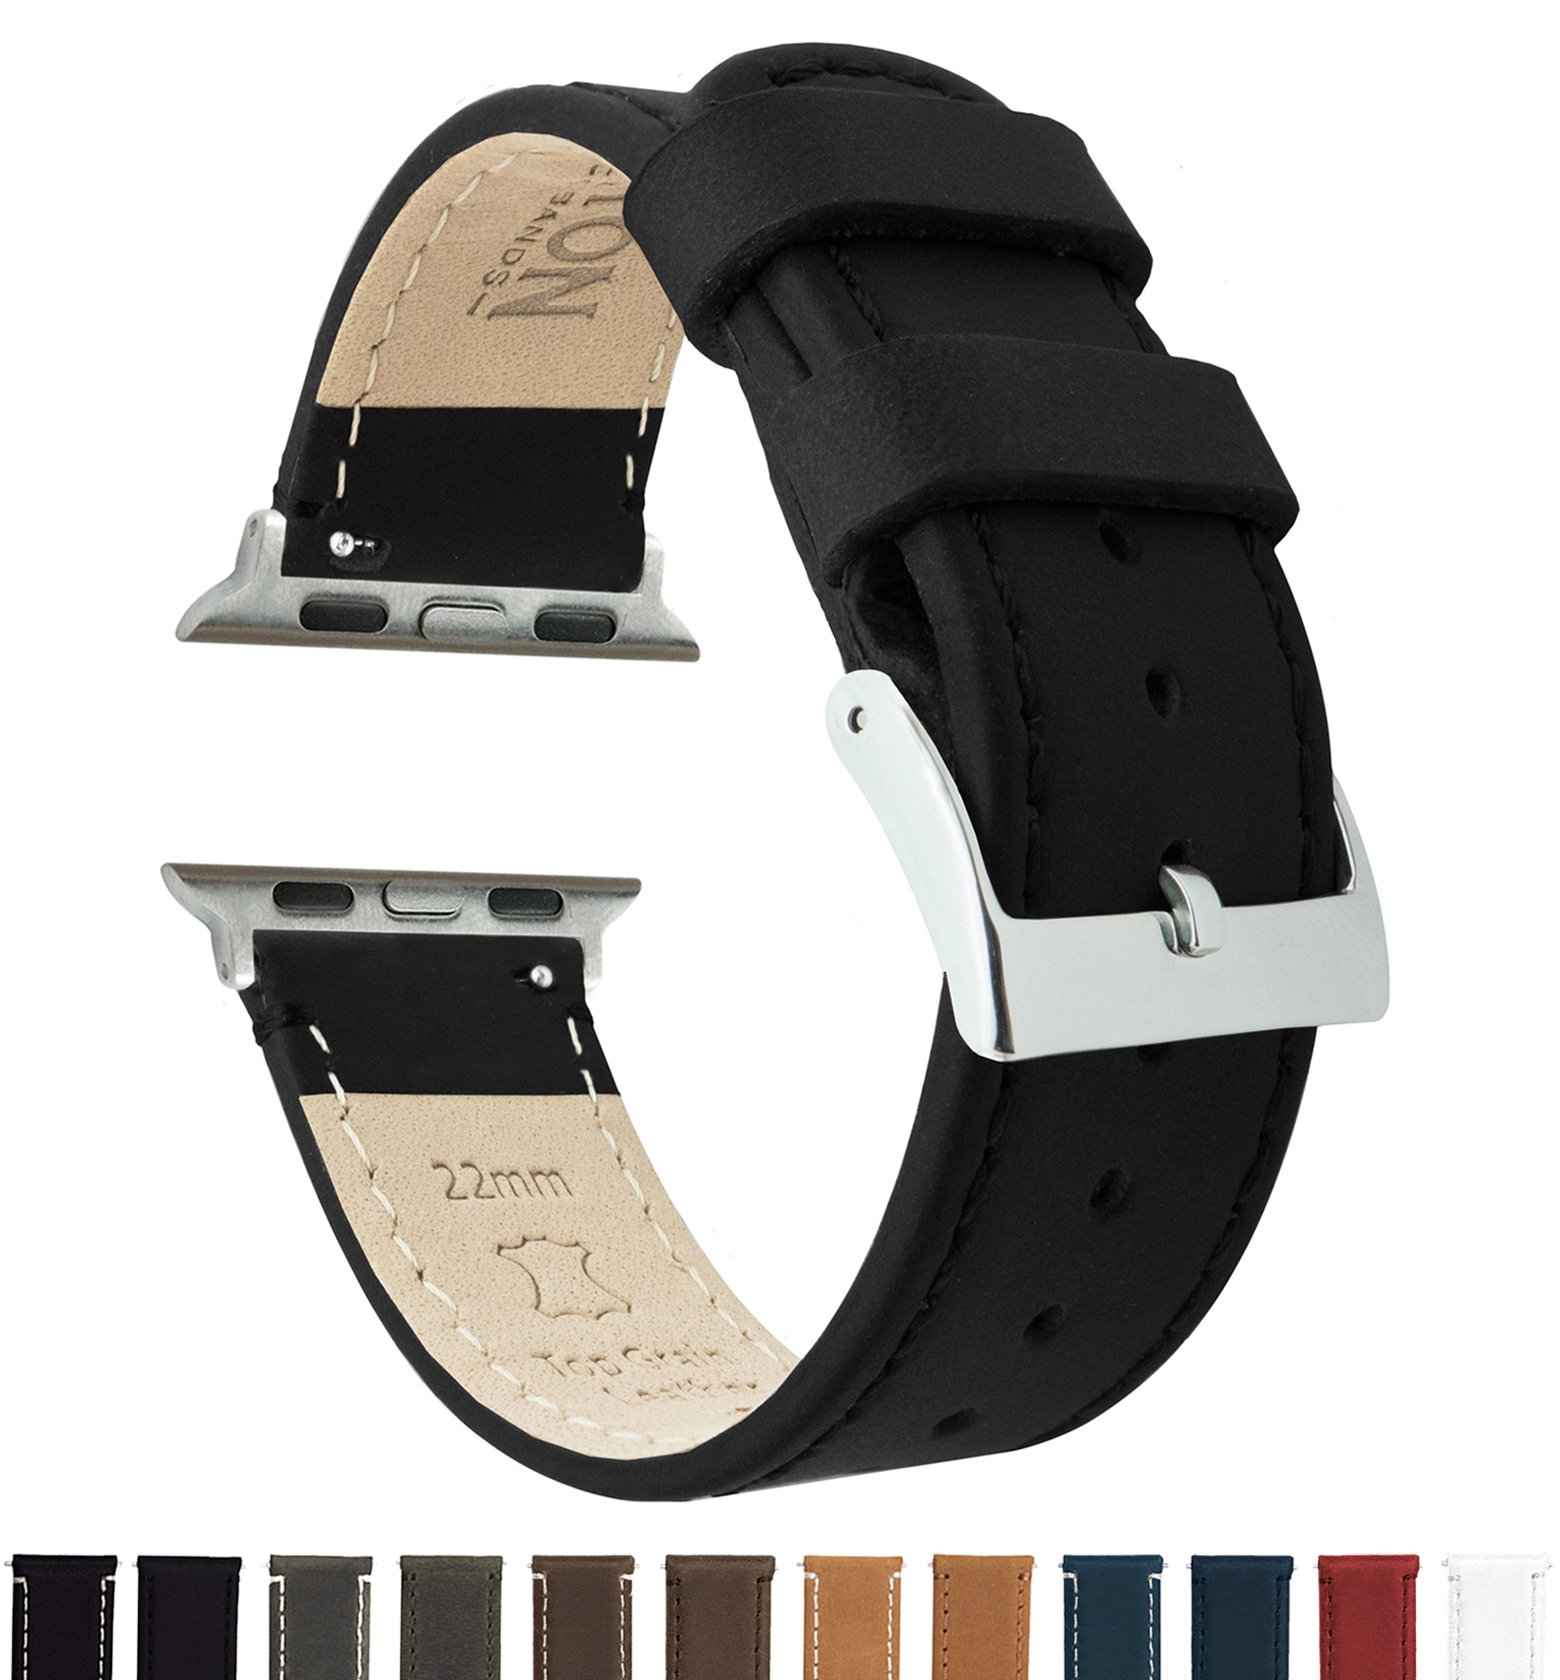 BARTON Leather Watch Bands for Apple Watch - Choice of Color in 42mm & 38mm -Black Leather & Stitching